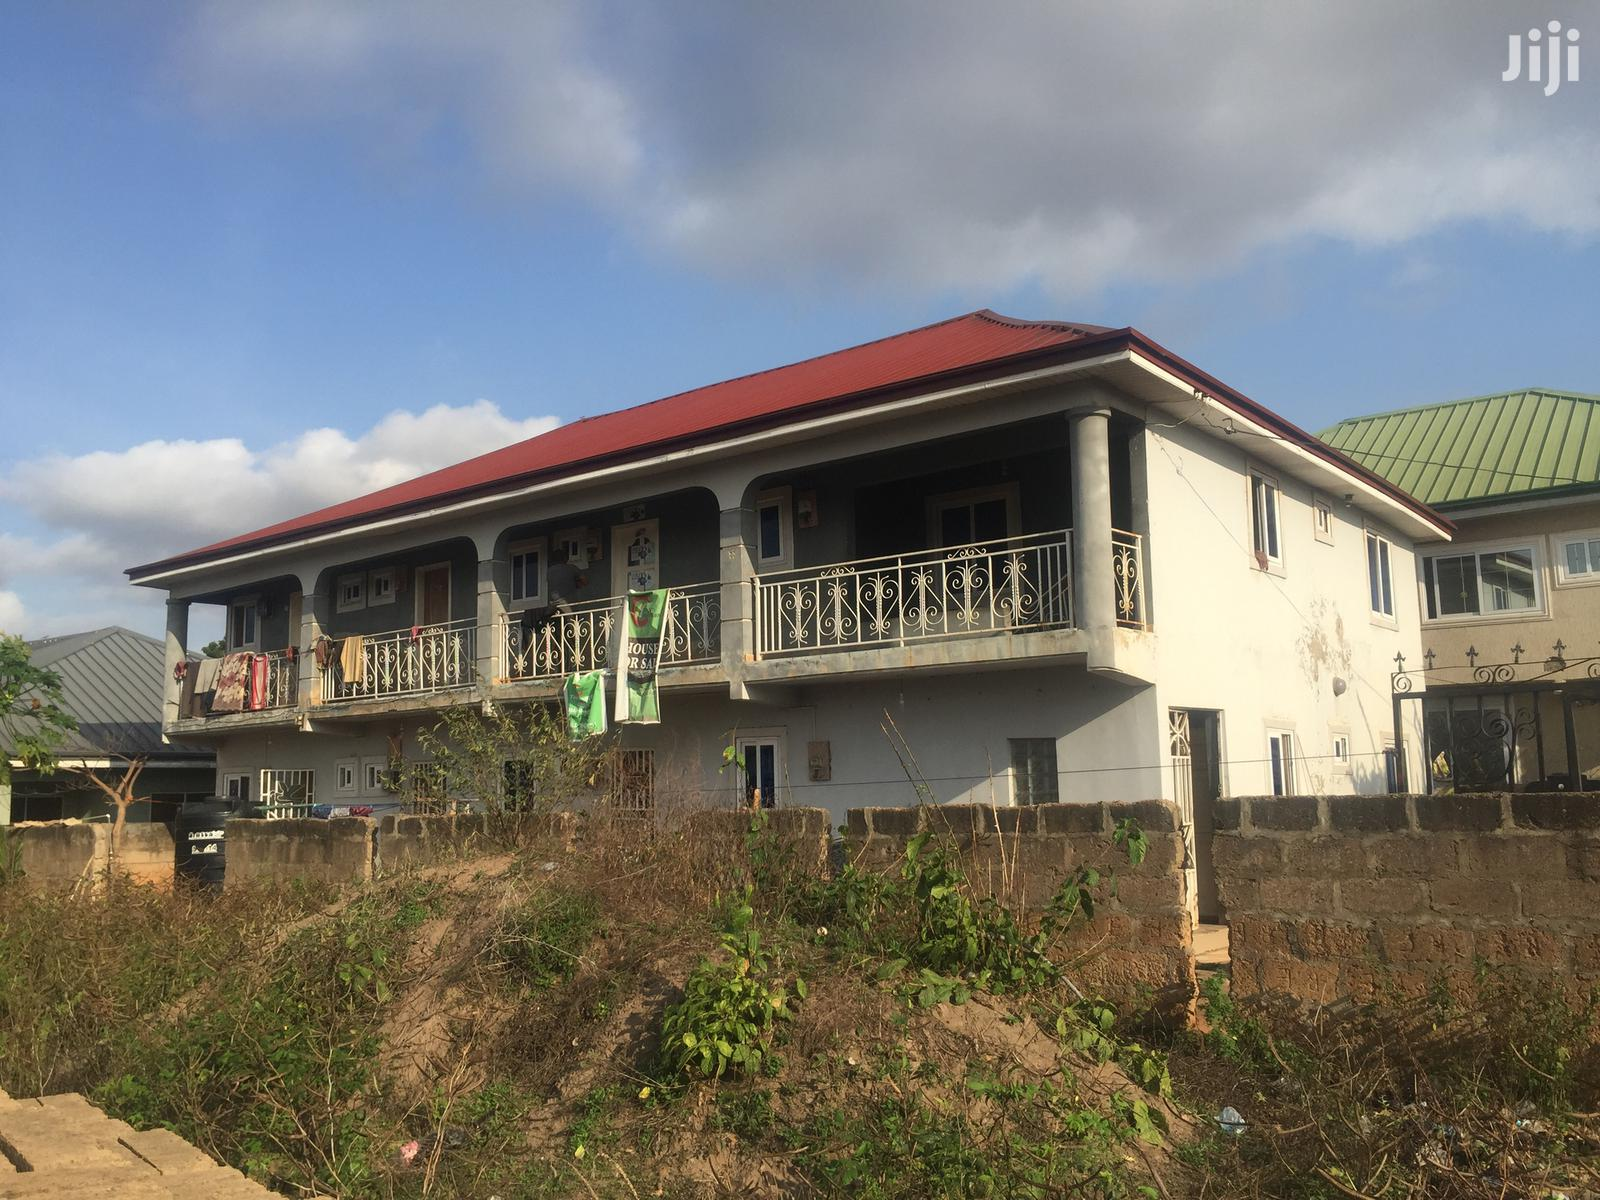 Chamber and Hall Apartment for Sale at Amarhia Otinibi